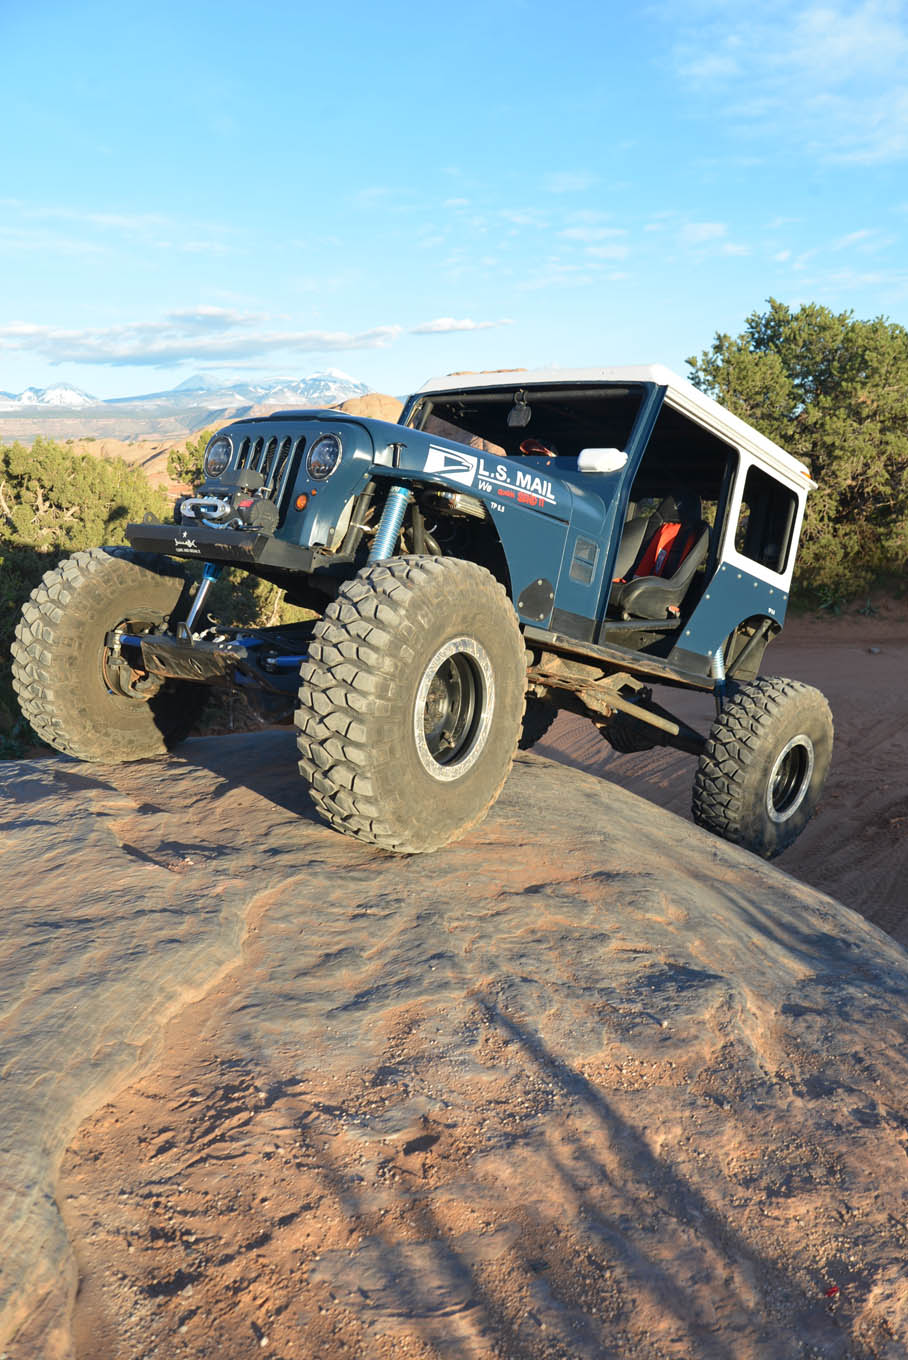 postal jeep ls mail right hand drive gallery 002